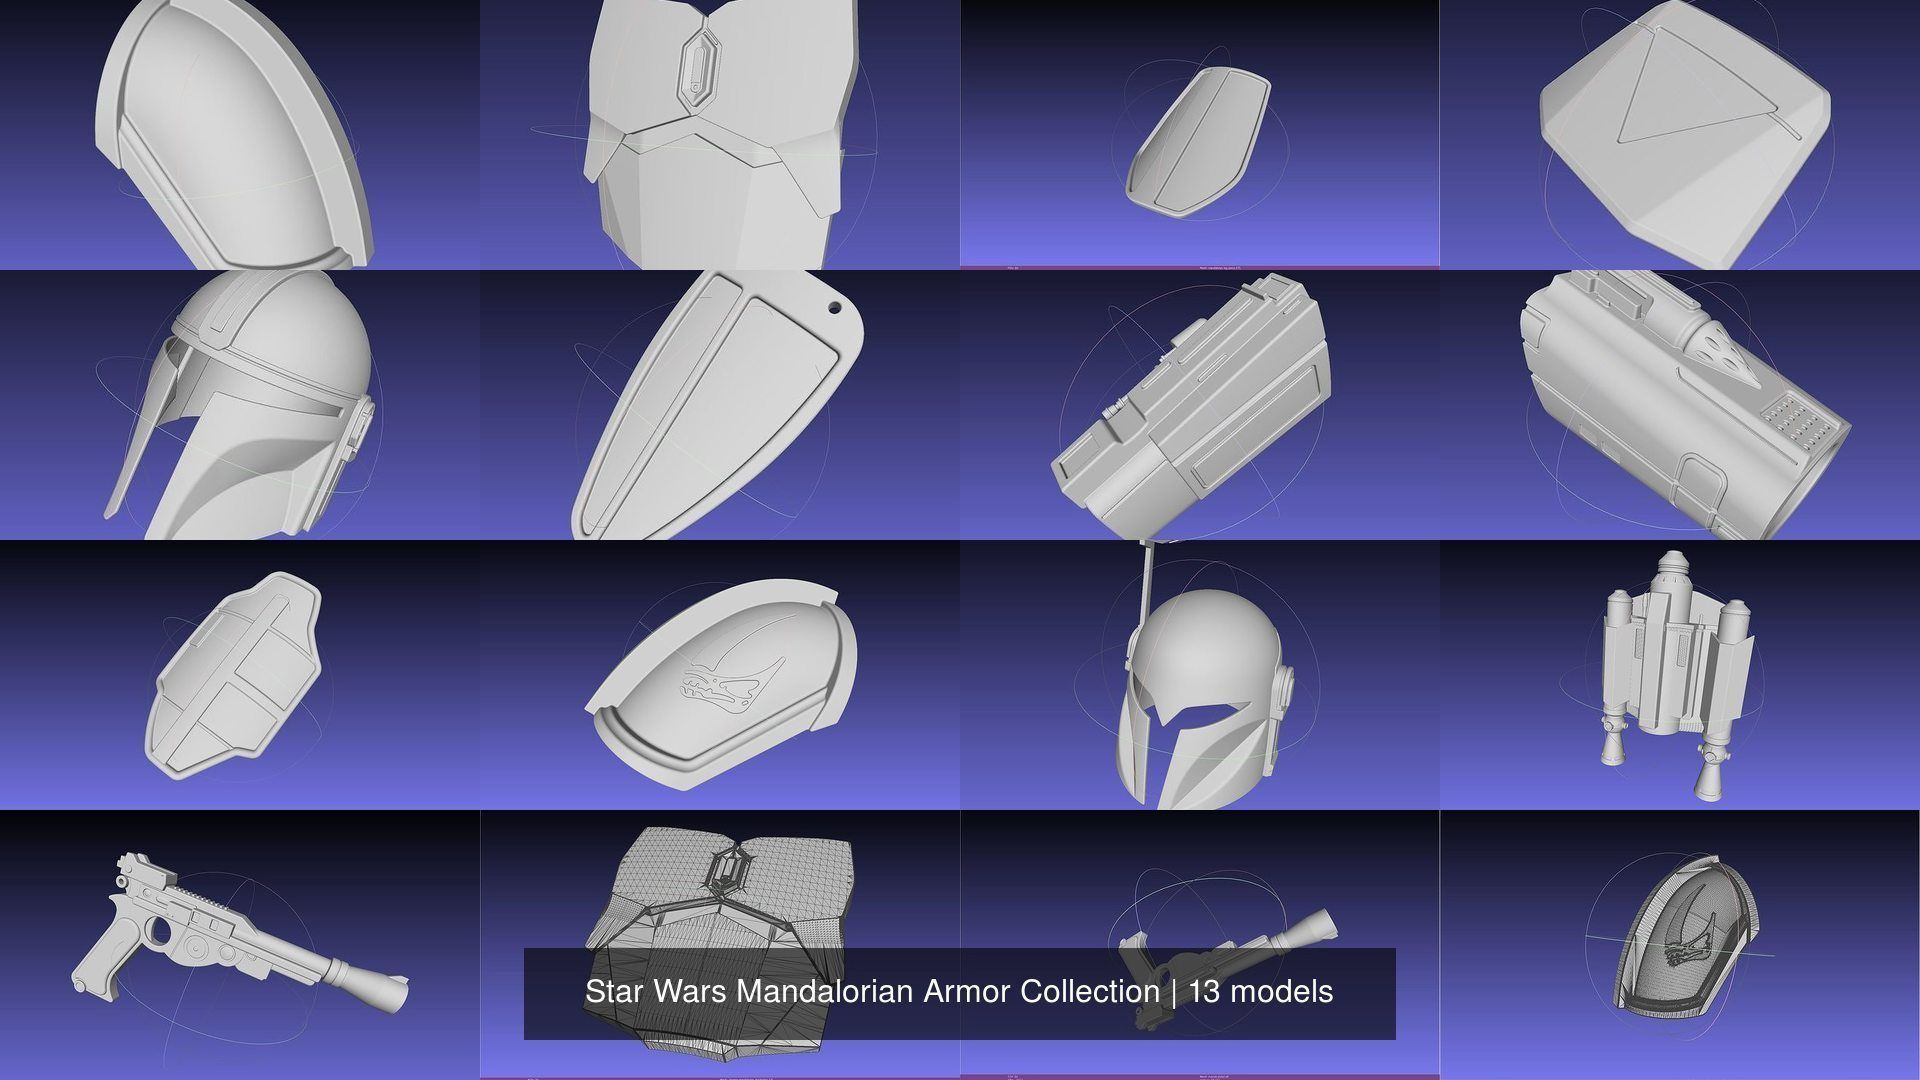 Star Wars Mandalorian Armor Collection